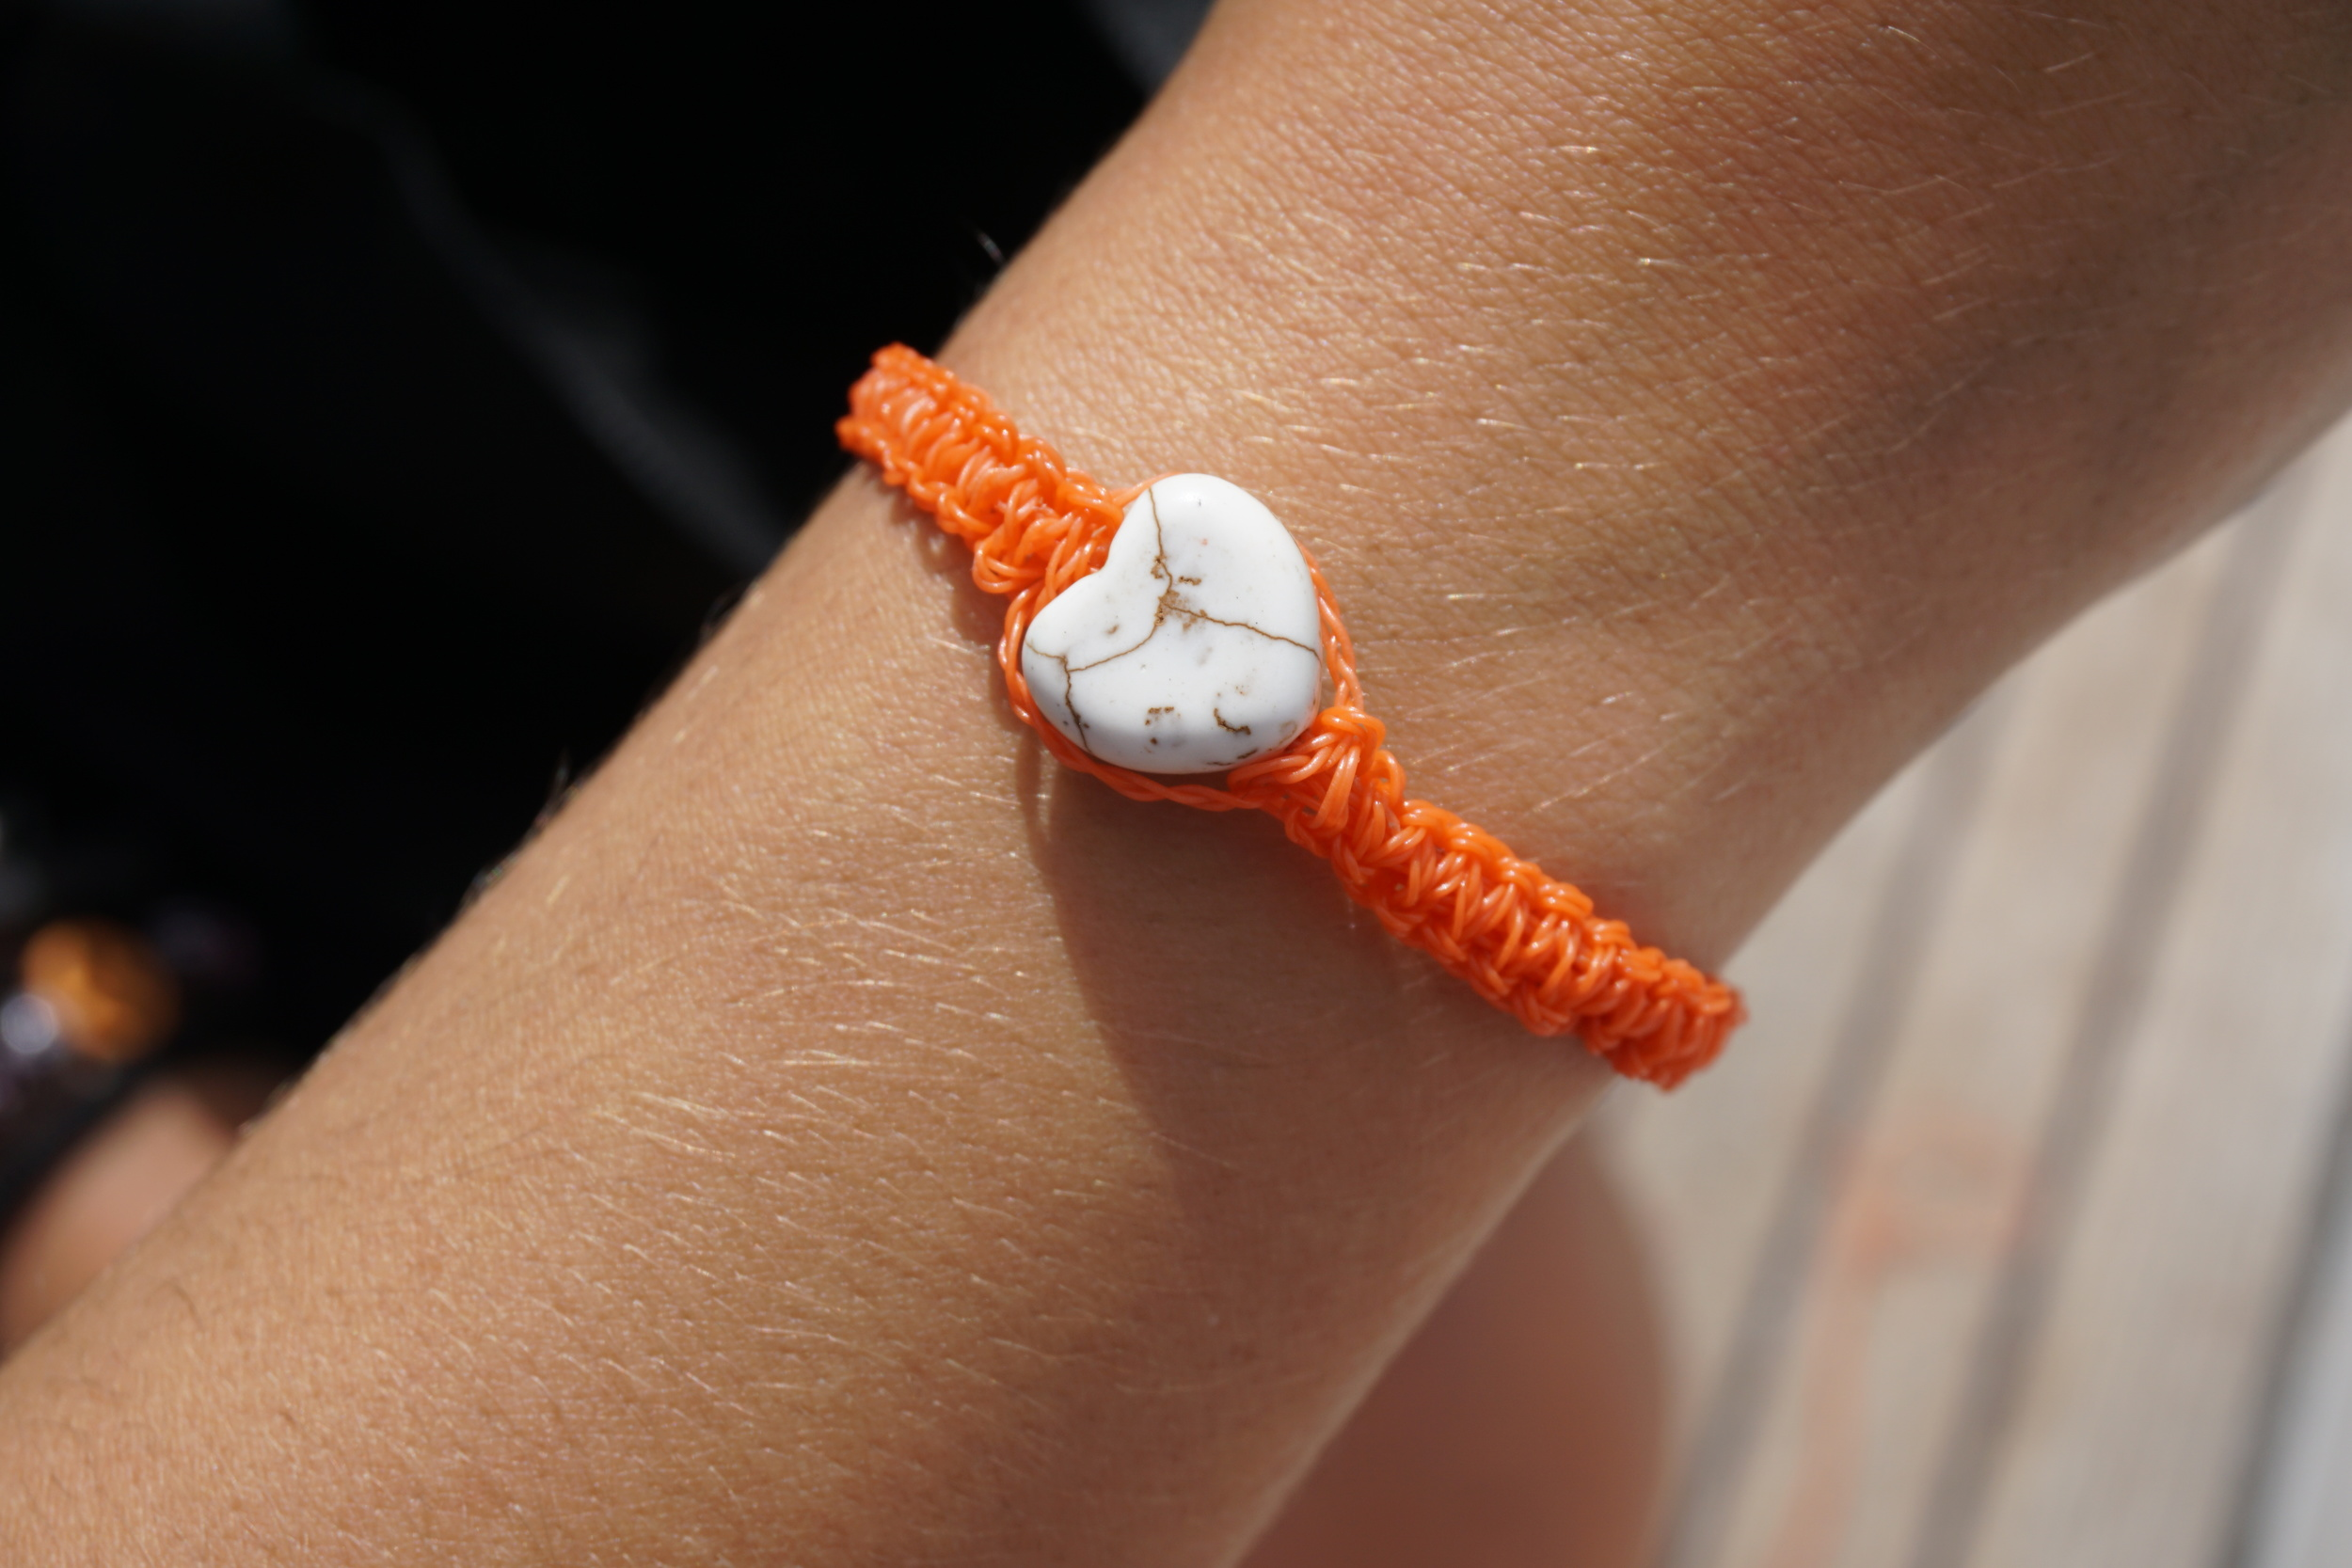 Bracelet made of fish net found on the beach. Reduce - reuse(!!) - recycle :)